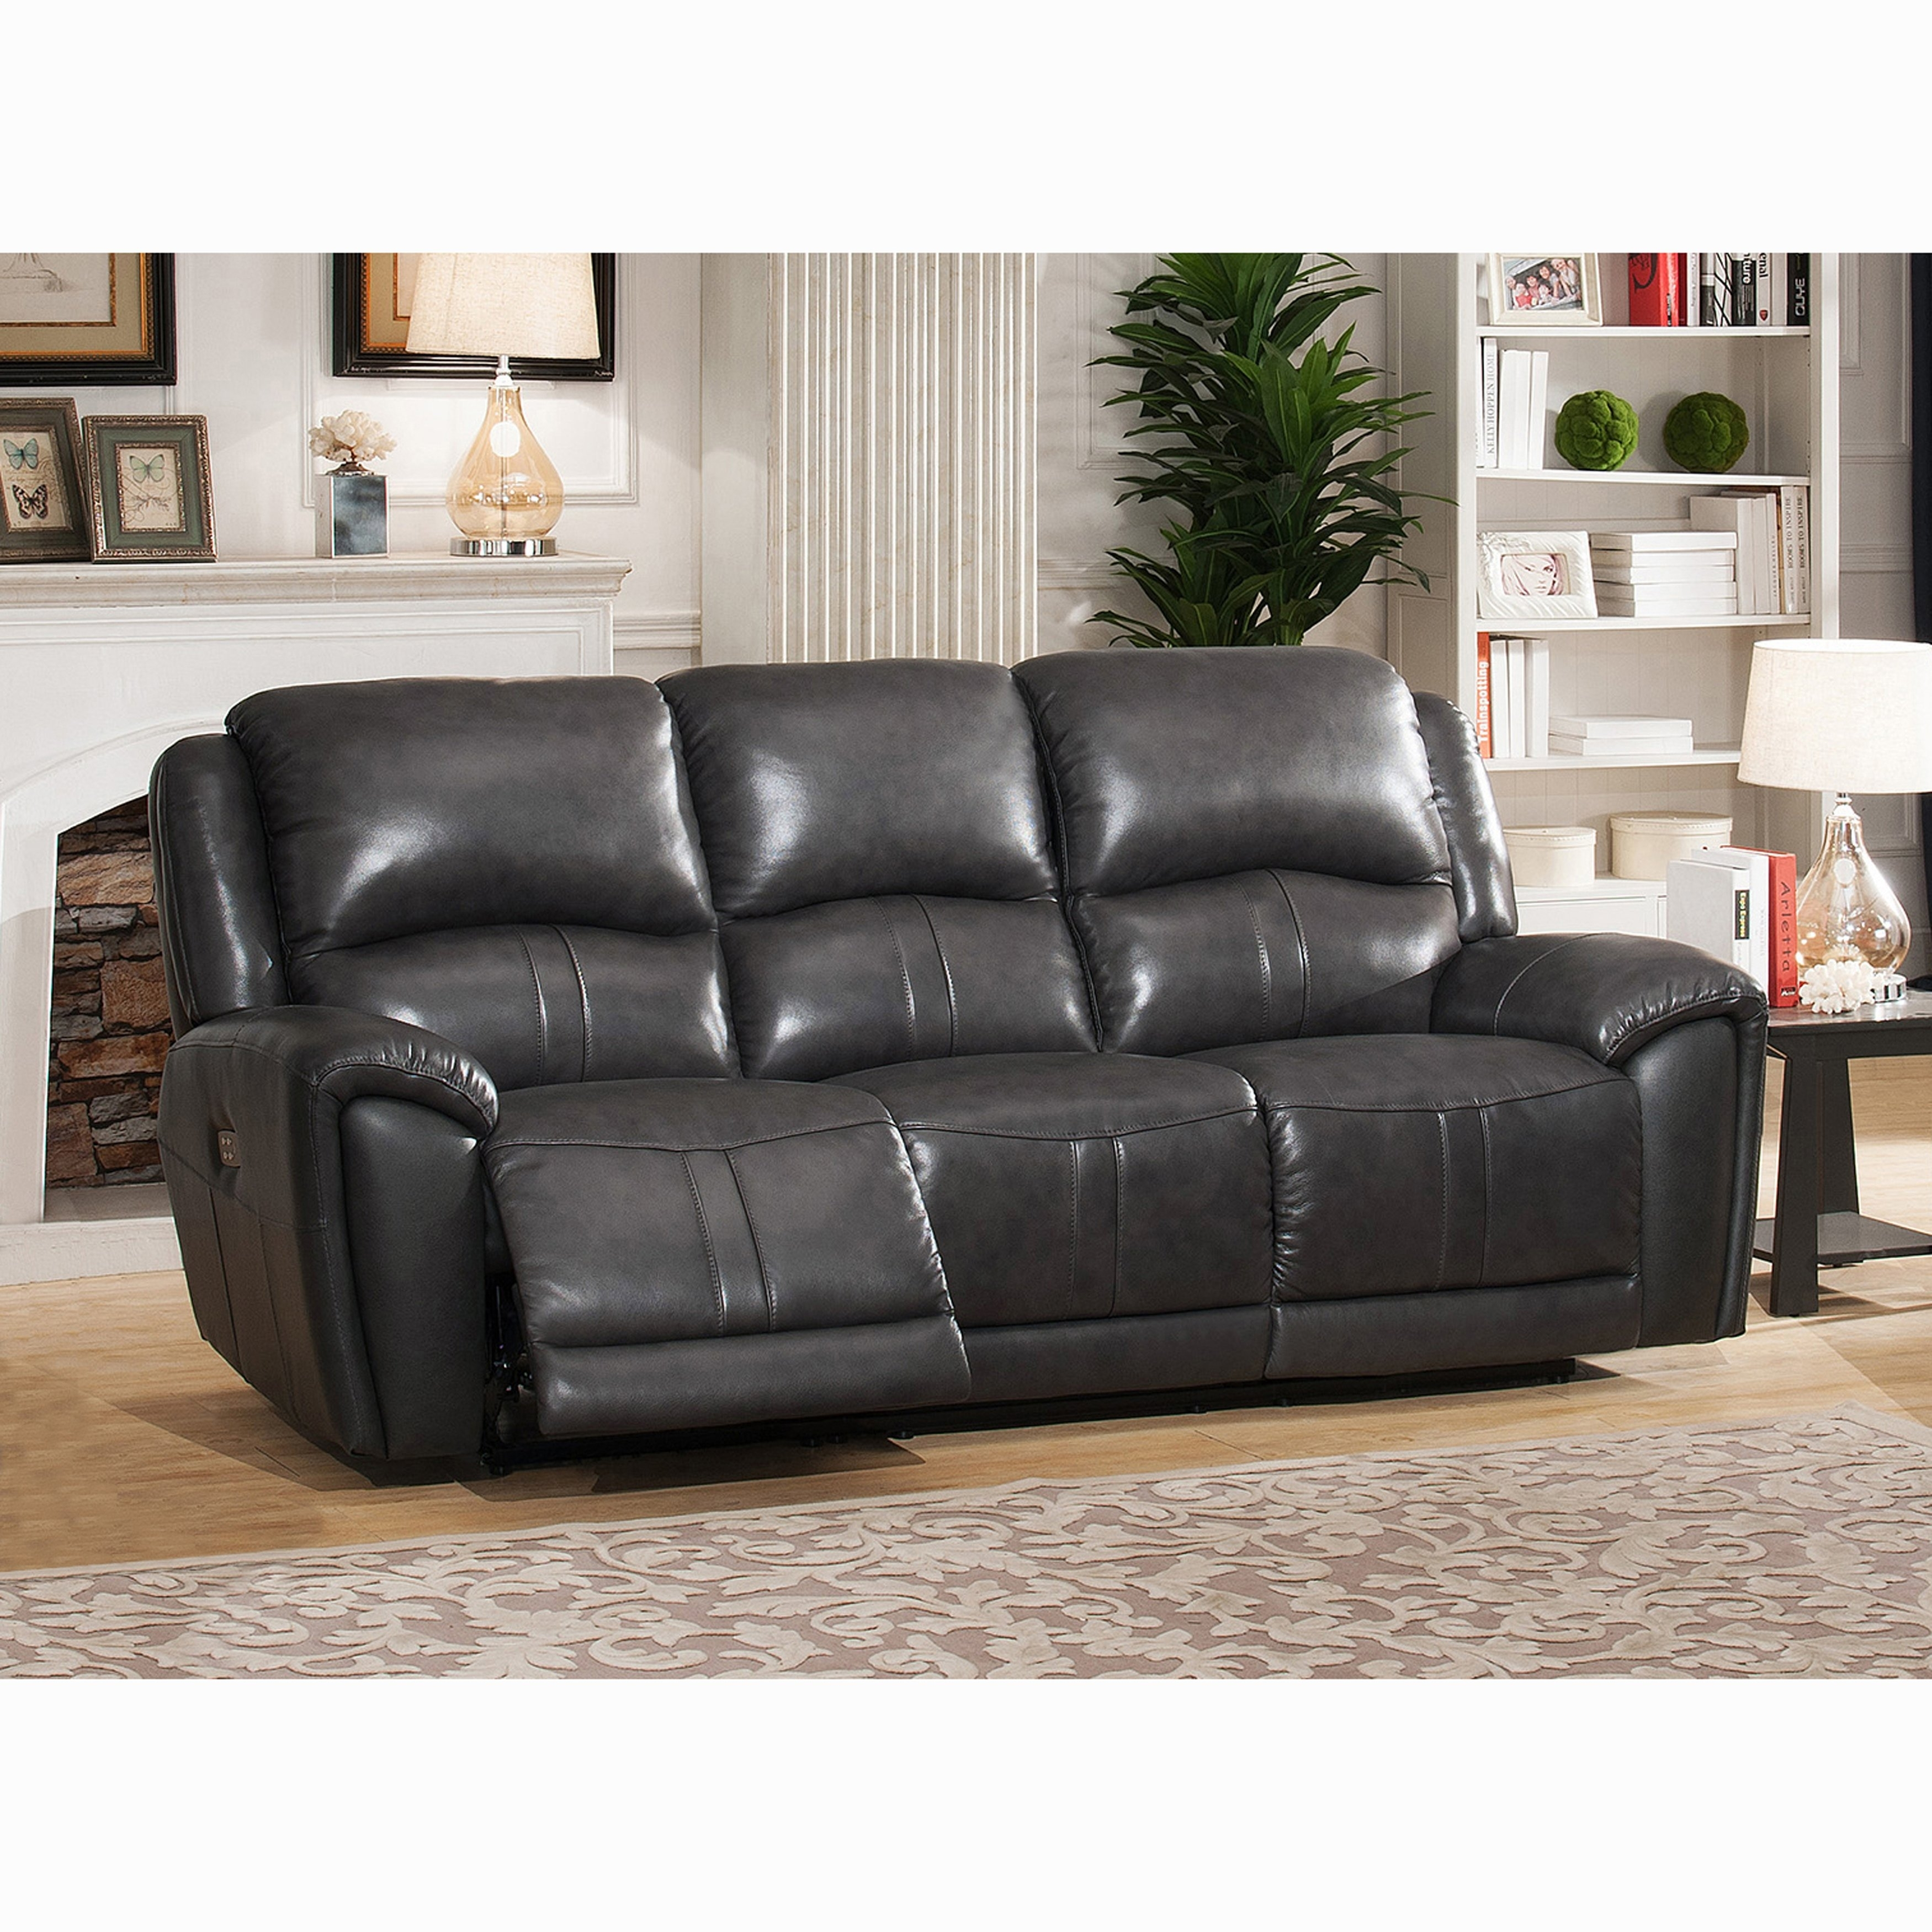 Shop Ari Grey Top Grain Leather Power Reclining Sofa With Power Within Marcus Grey 6 Piece Sectionals With Power Headrest & Usb (View 7 of 25)